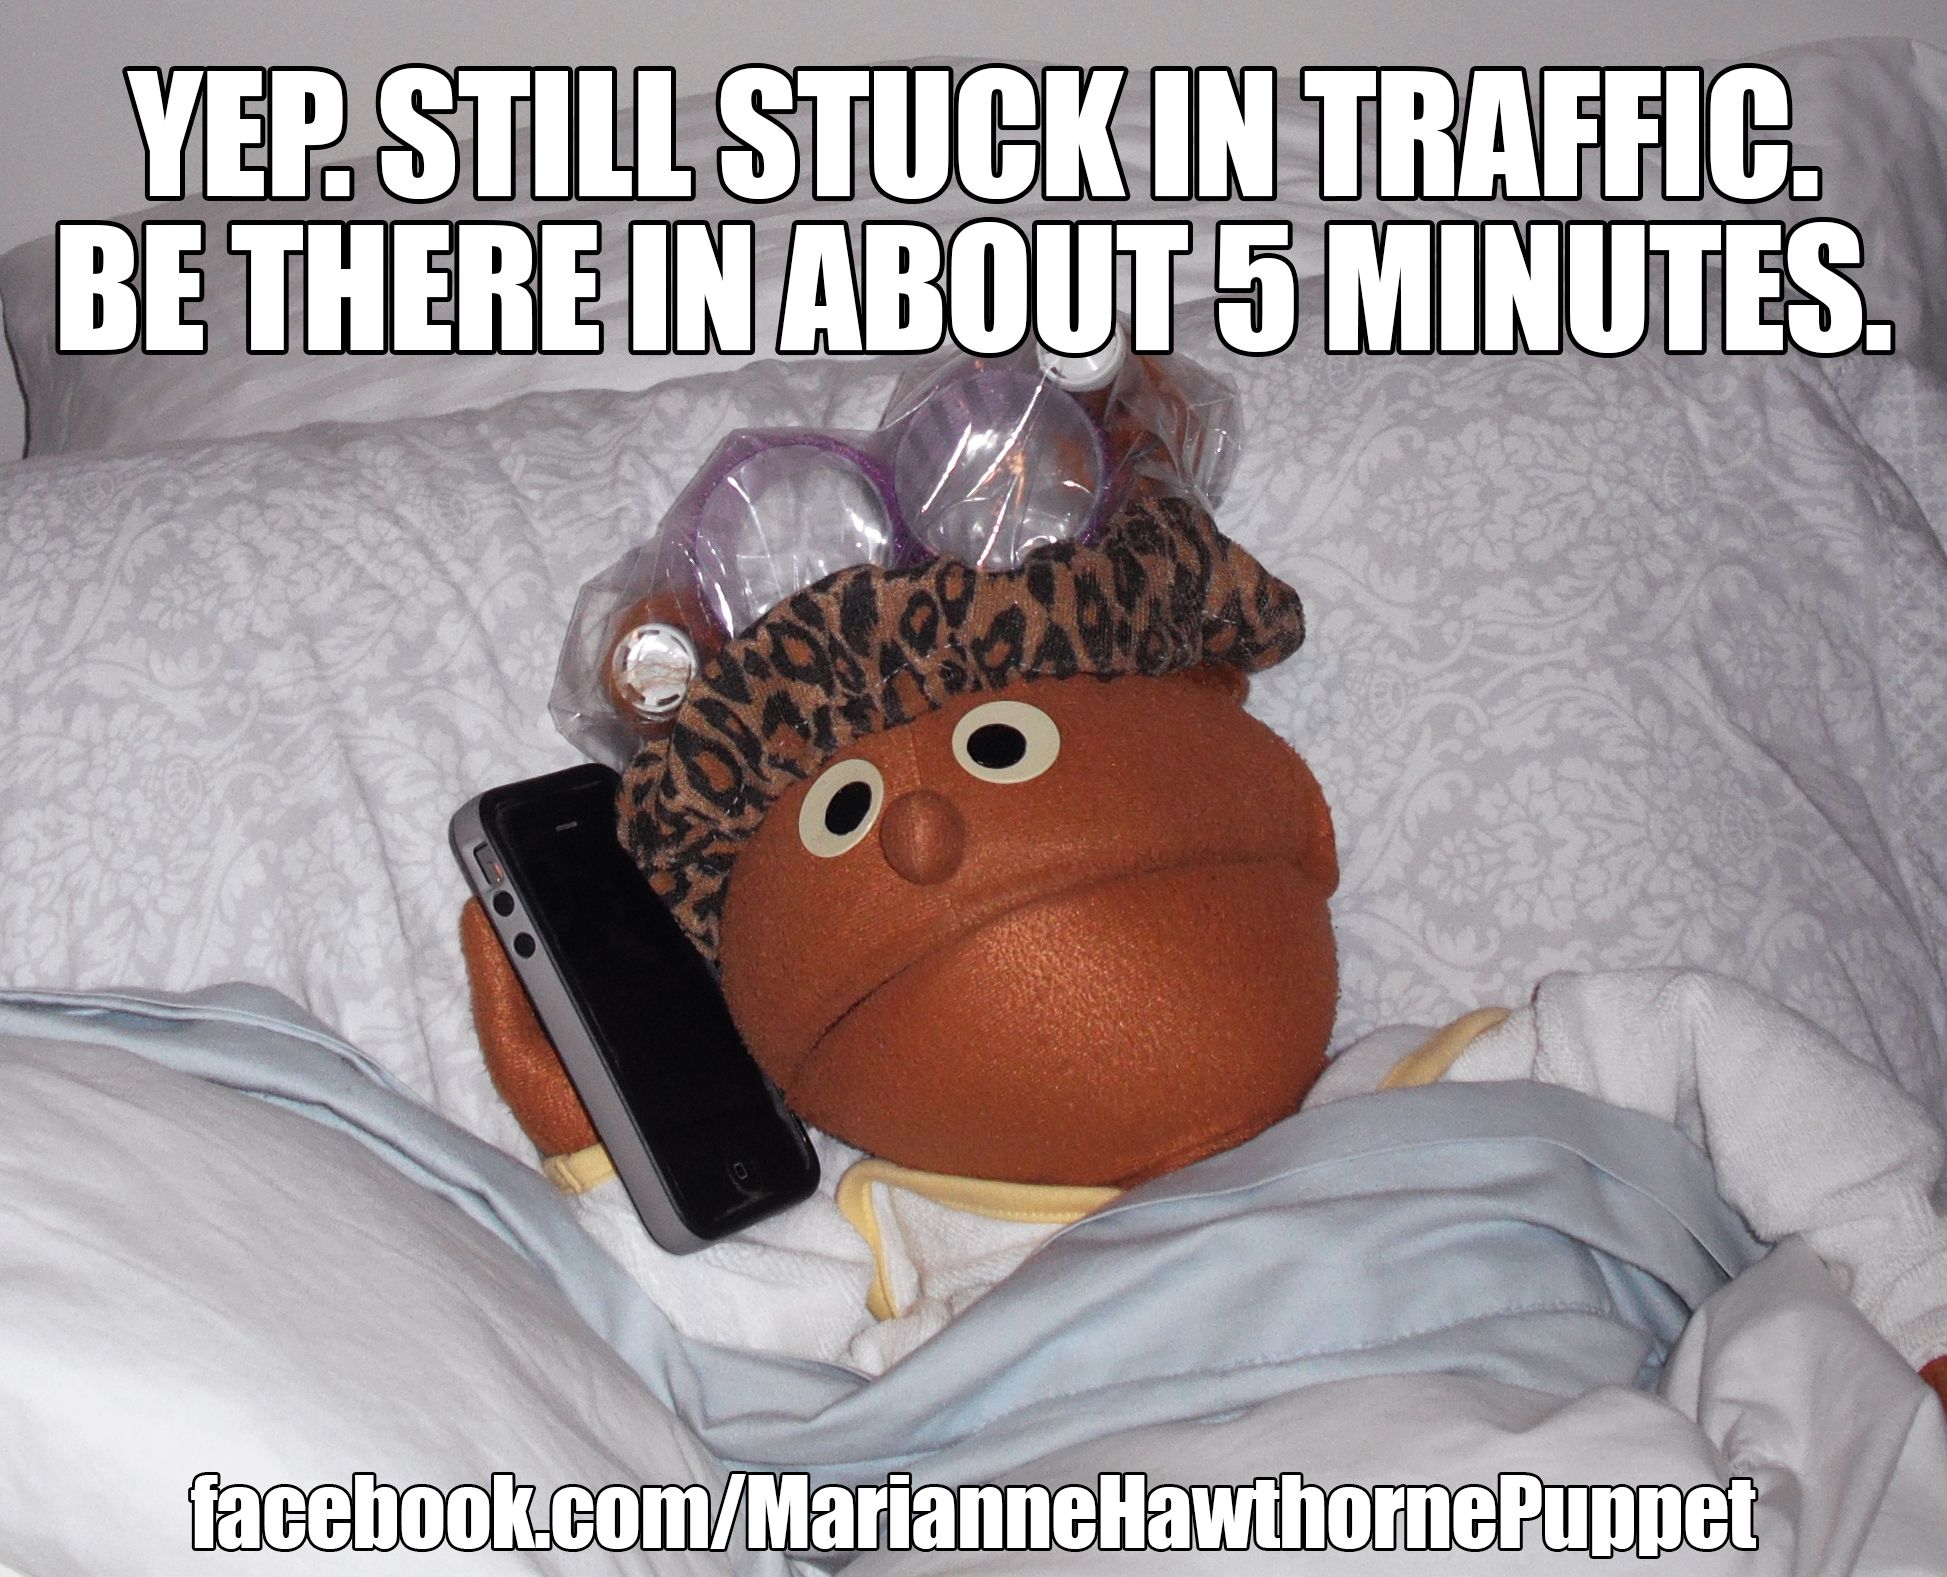 Funny Have A Good Day At Work Meme : Yep. still stuck in traffic. be there in about 5 minutes. work meme